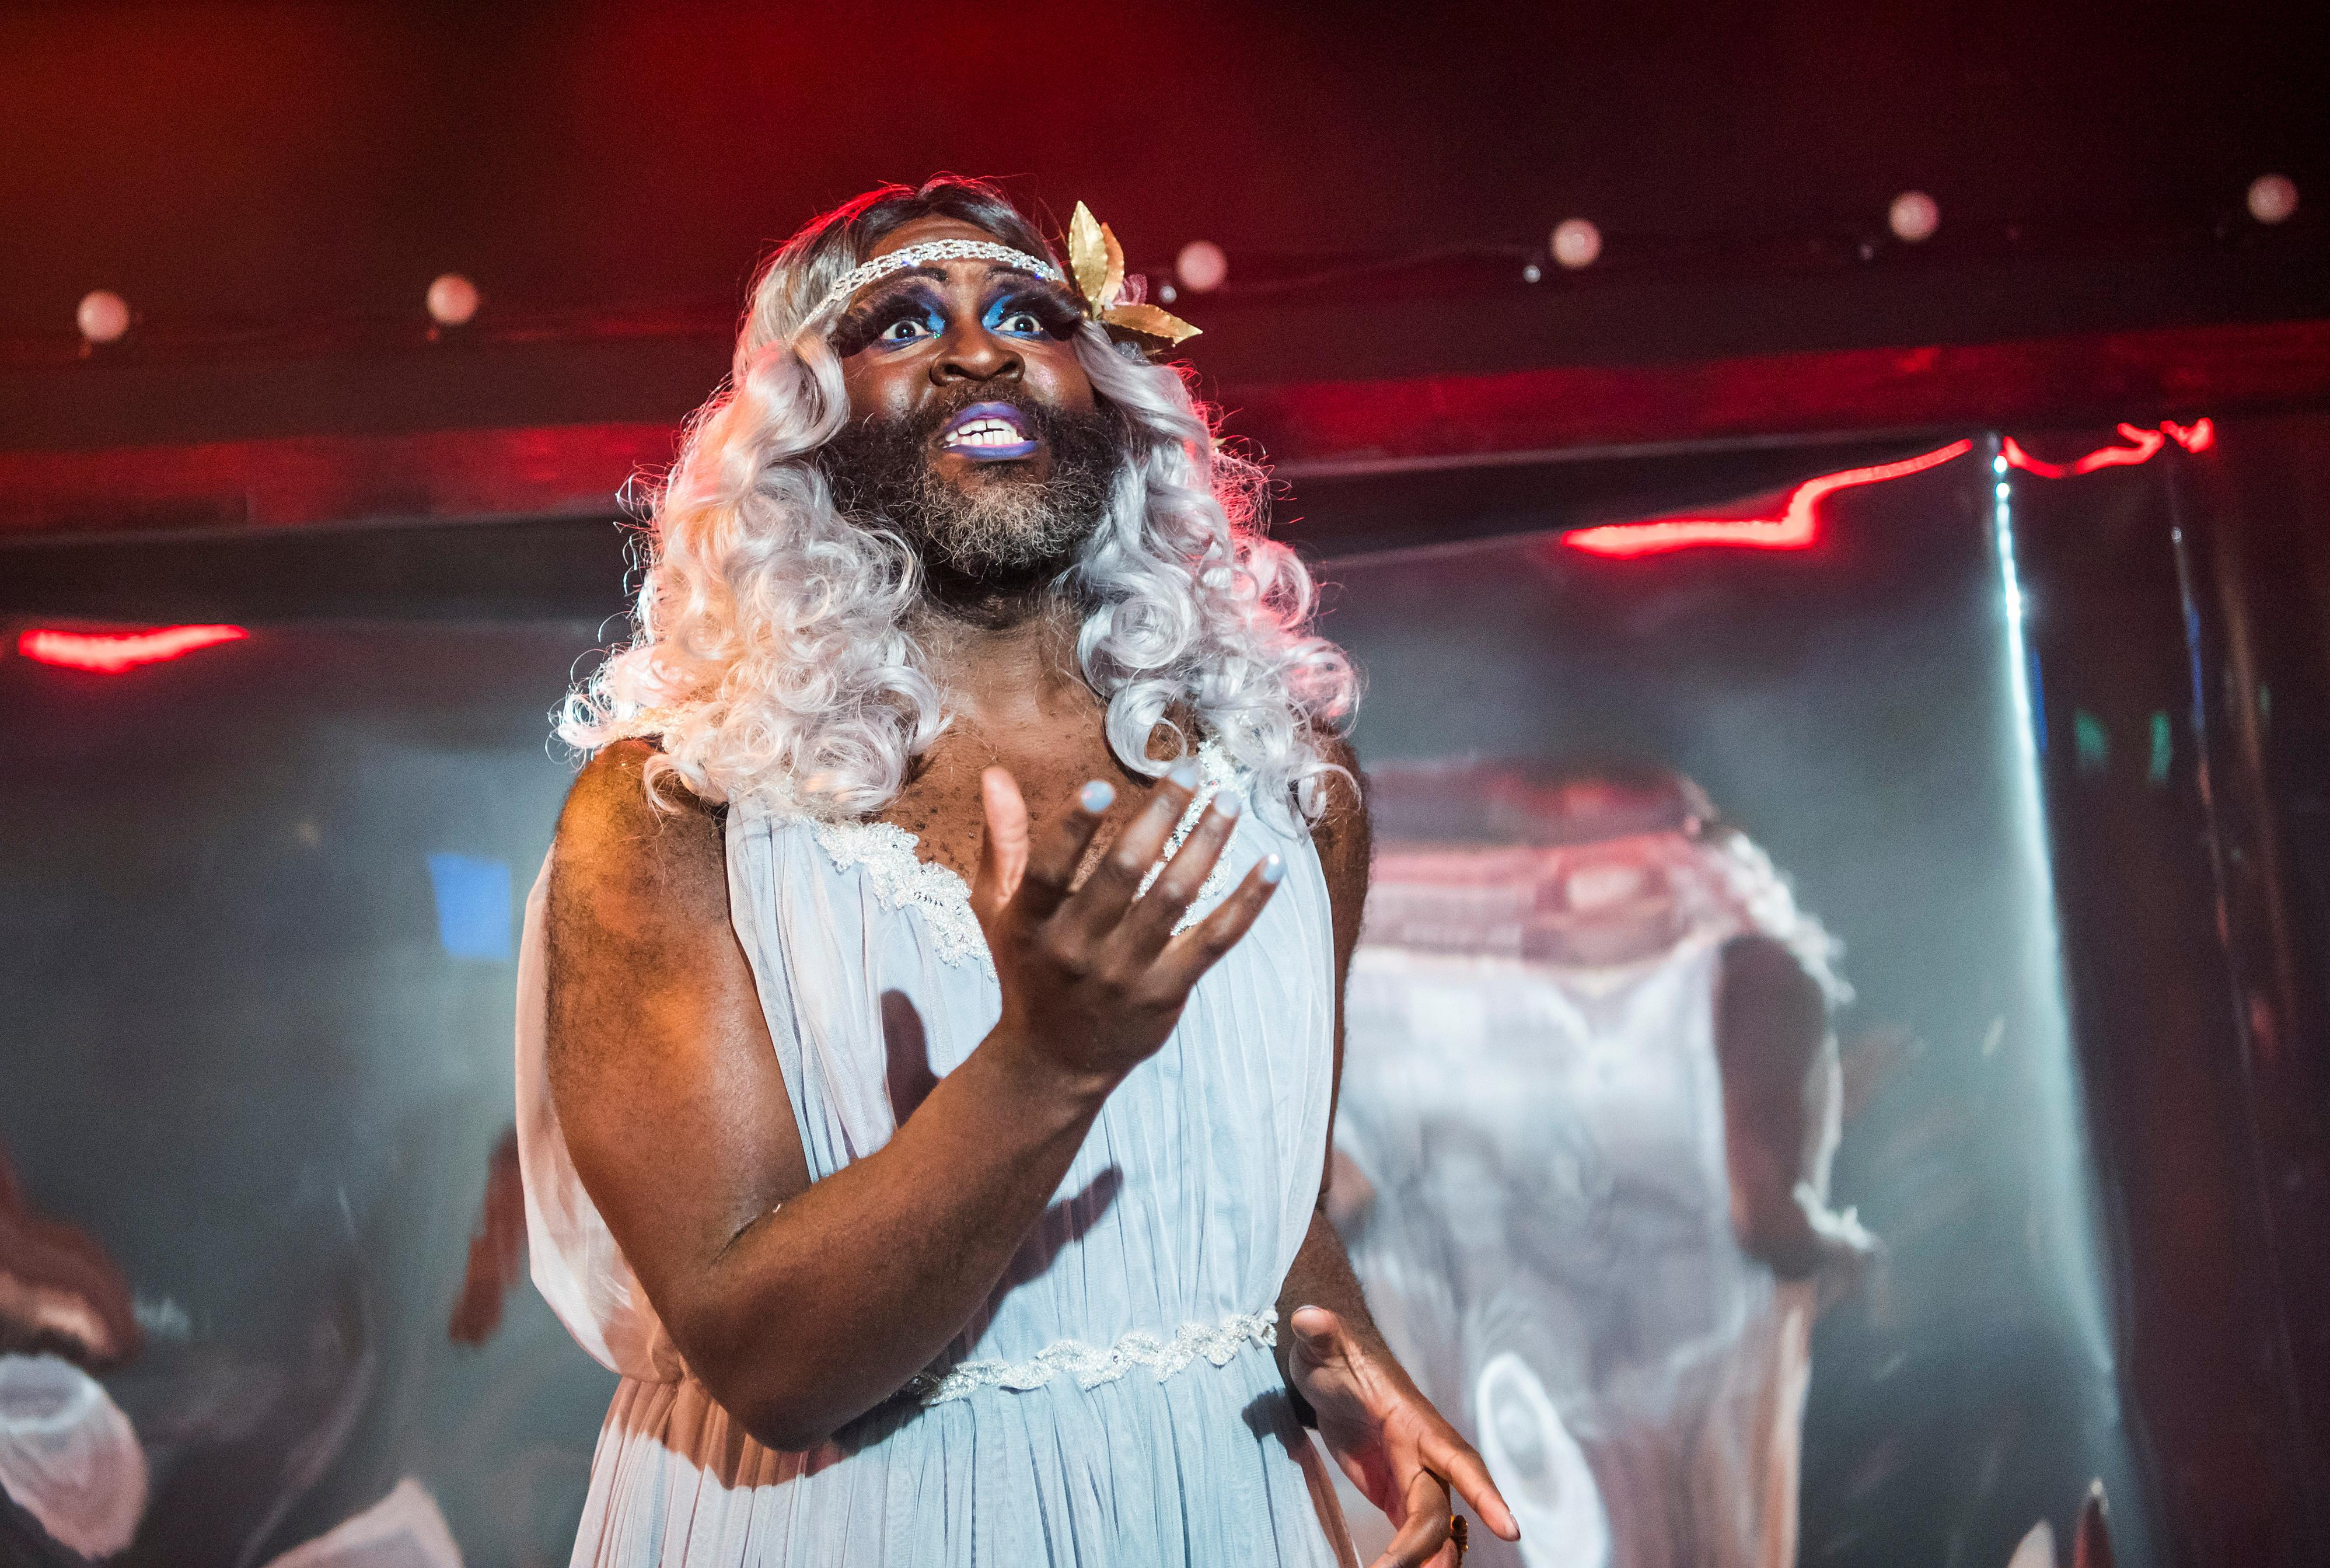 From hip-hop theatre to bearded drag, cabaret is open to everyone